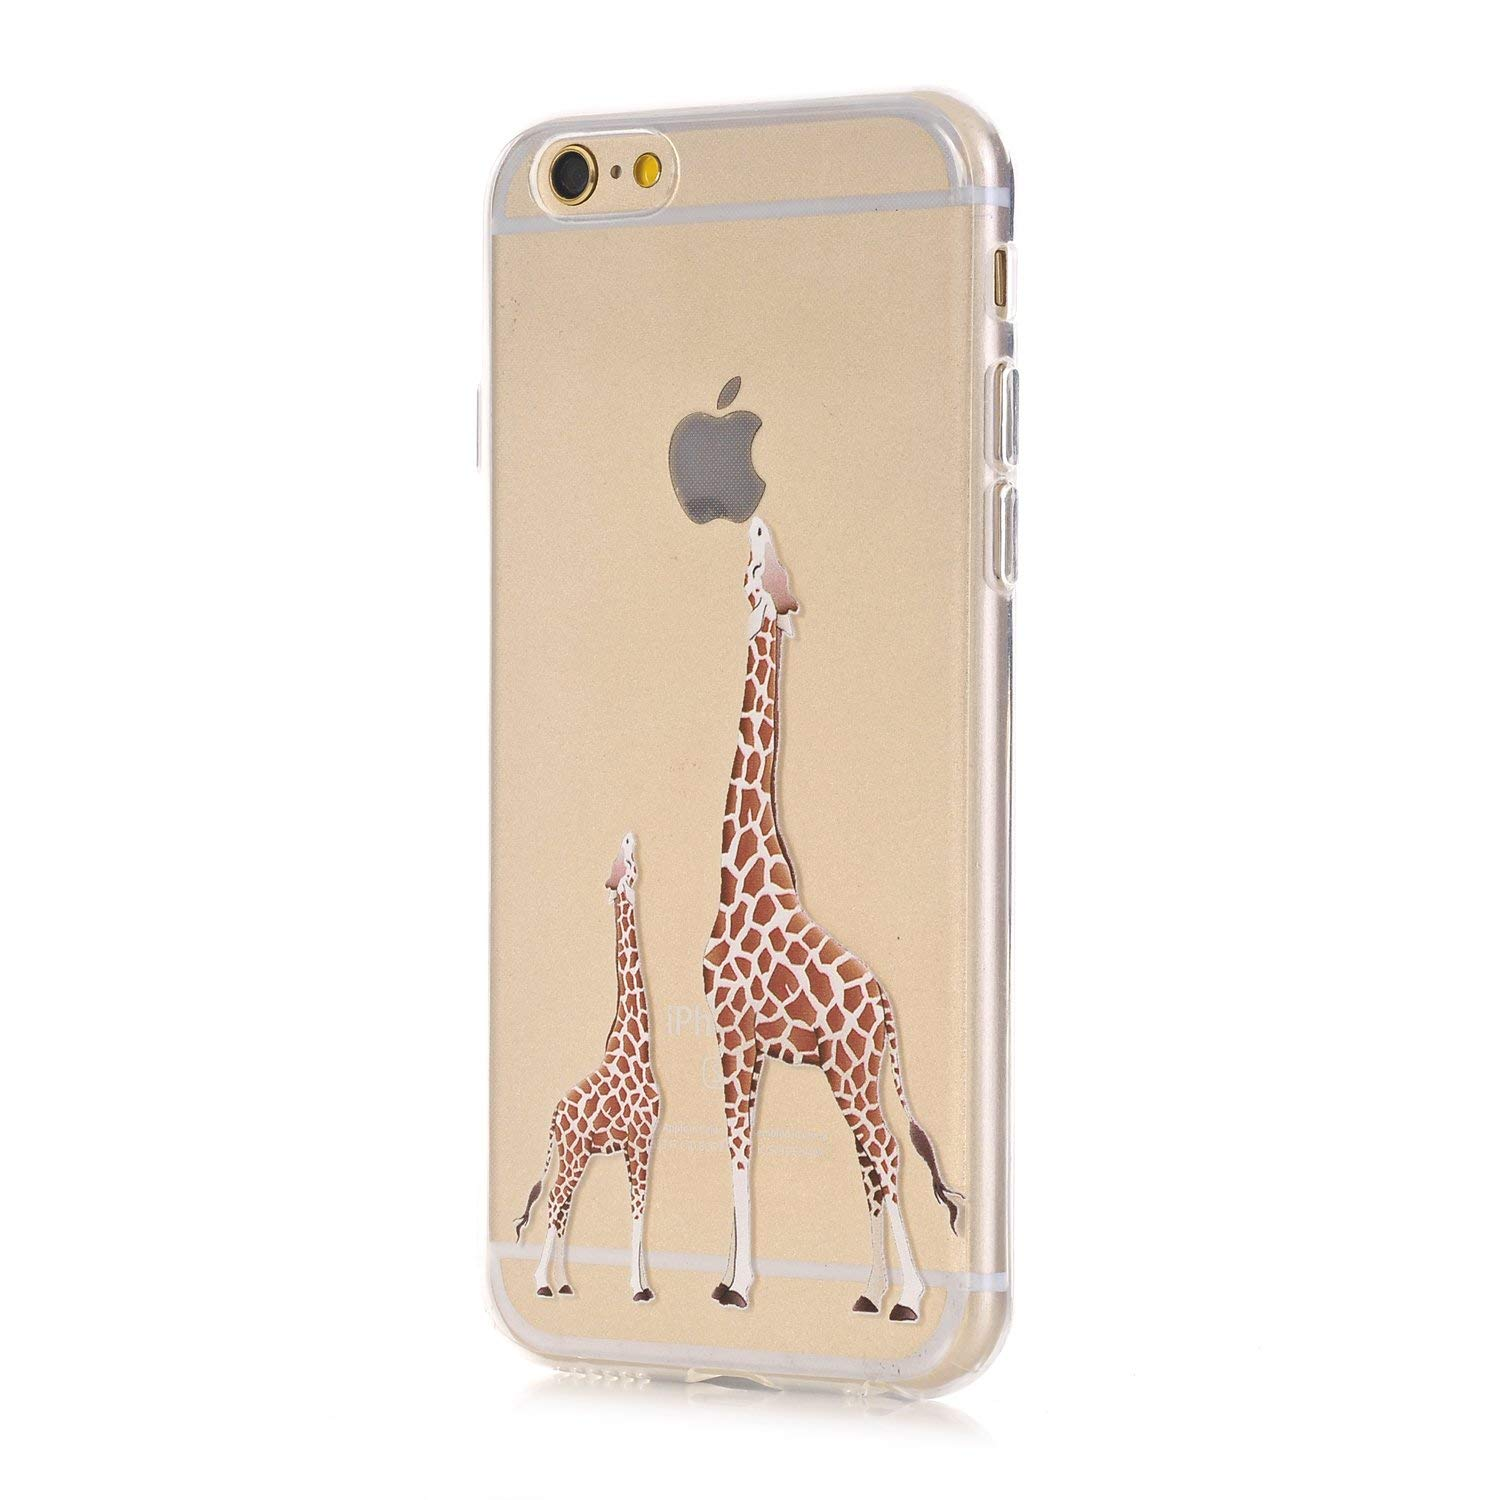 online store b7aaa e8845 LUOLNH iPhone 6 Plus Case,iPhone 6S Plus Case, [New Creative Design]  Flexible Soft TPU Silicone Gel Soft Clear Phone Case Cover for iPhone 6  Plus/6S ...